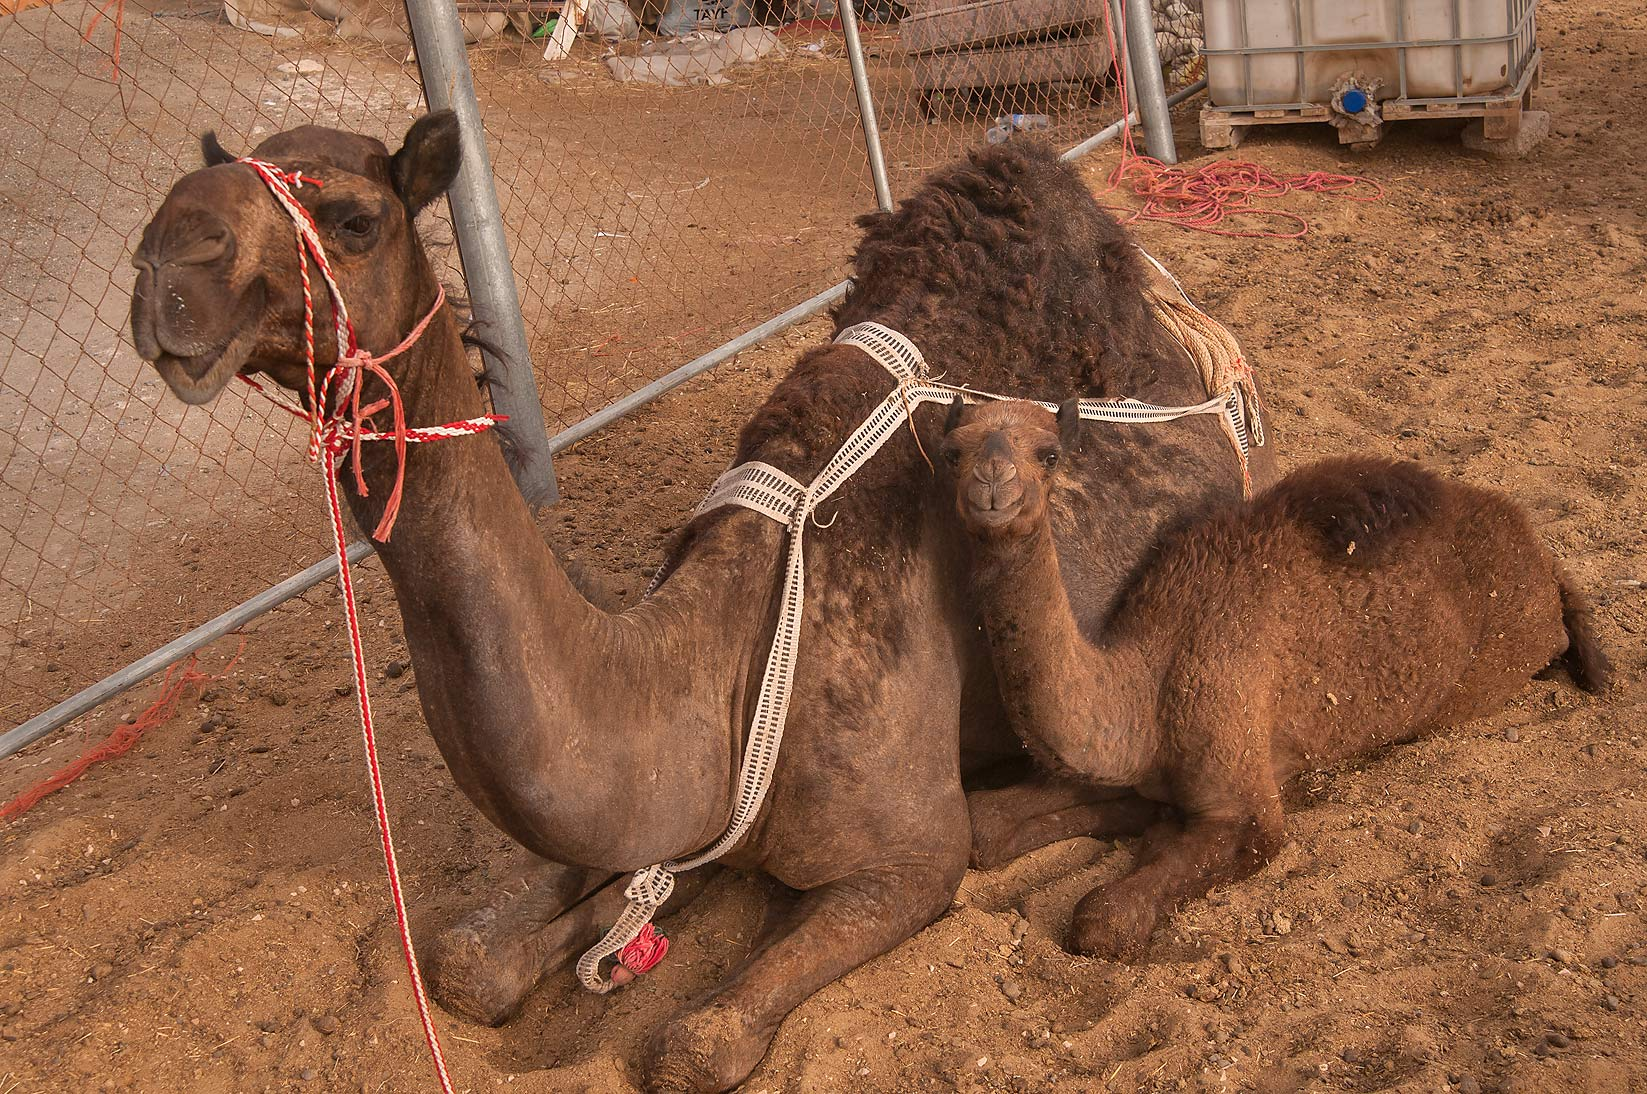 Family of dark camels in Livestock Market, Abu Hamour area. Doha, Qatar